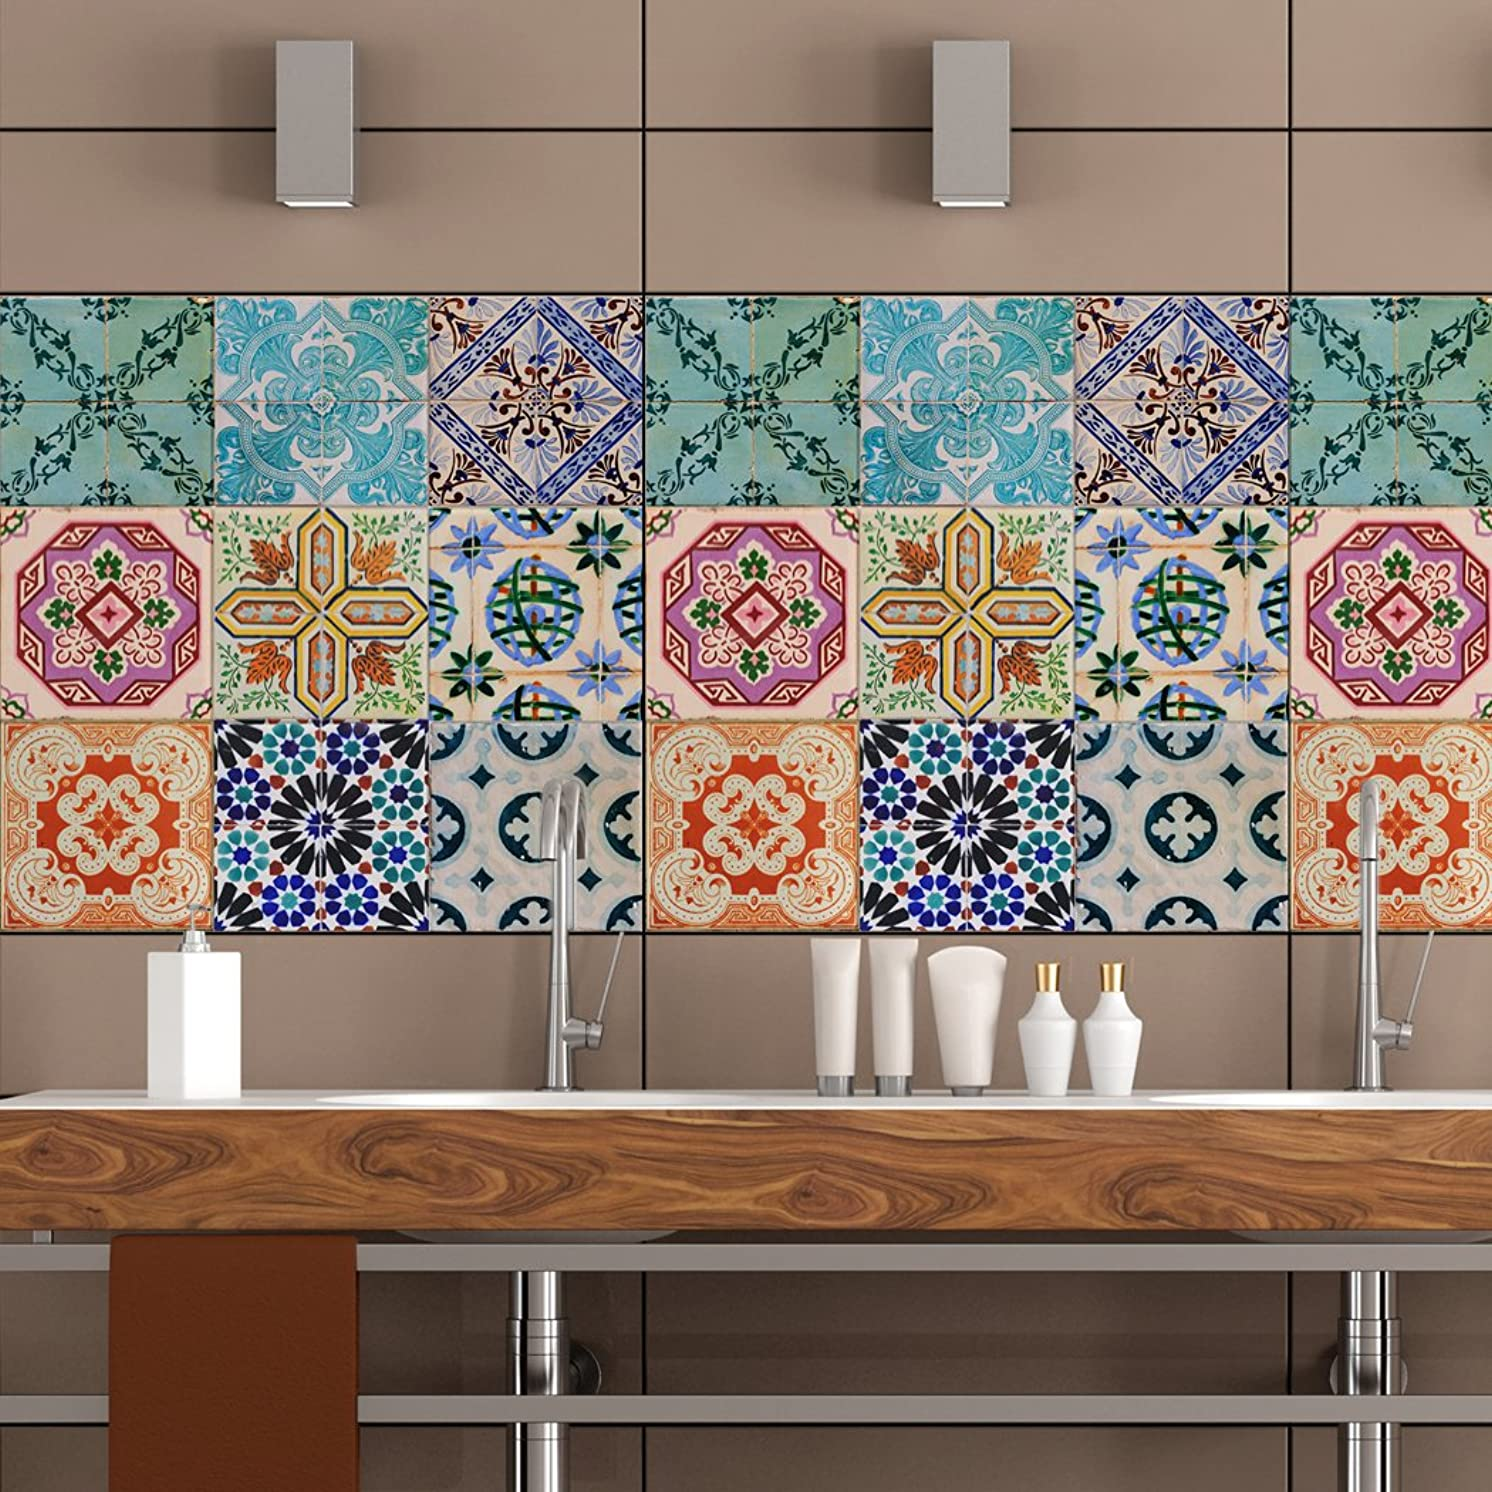 Portuguese Tiles Stickers Maceira - Pack of 16 tiles - Tile Decals Art for Walls Kitchen backsplash Bathroom (5 x 5 inches (Set of 16))